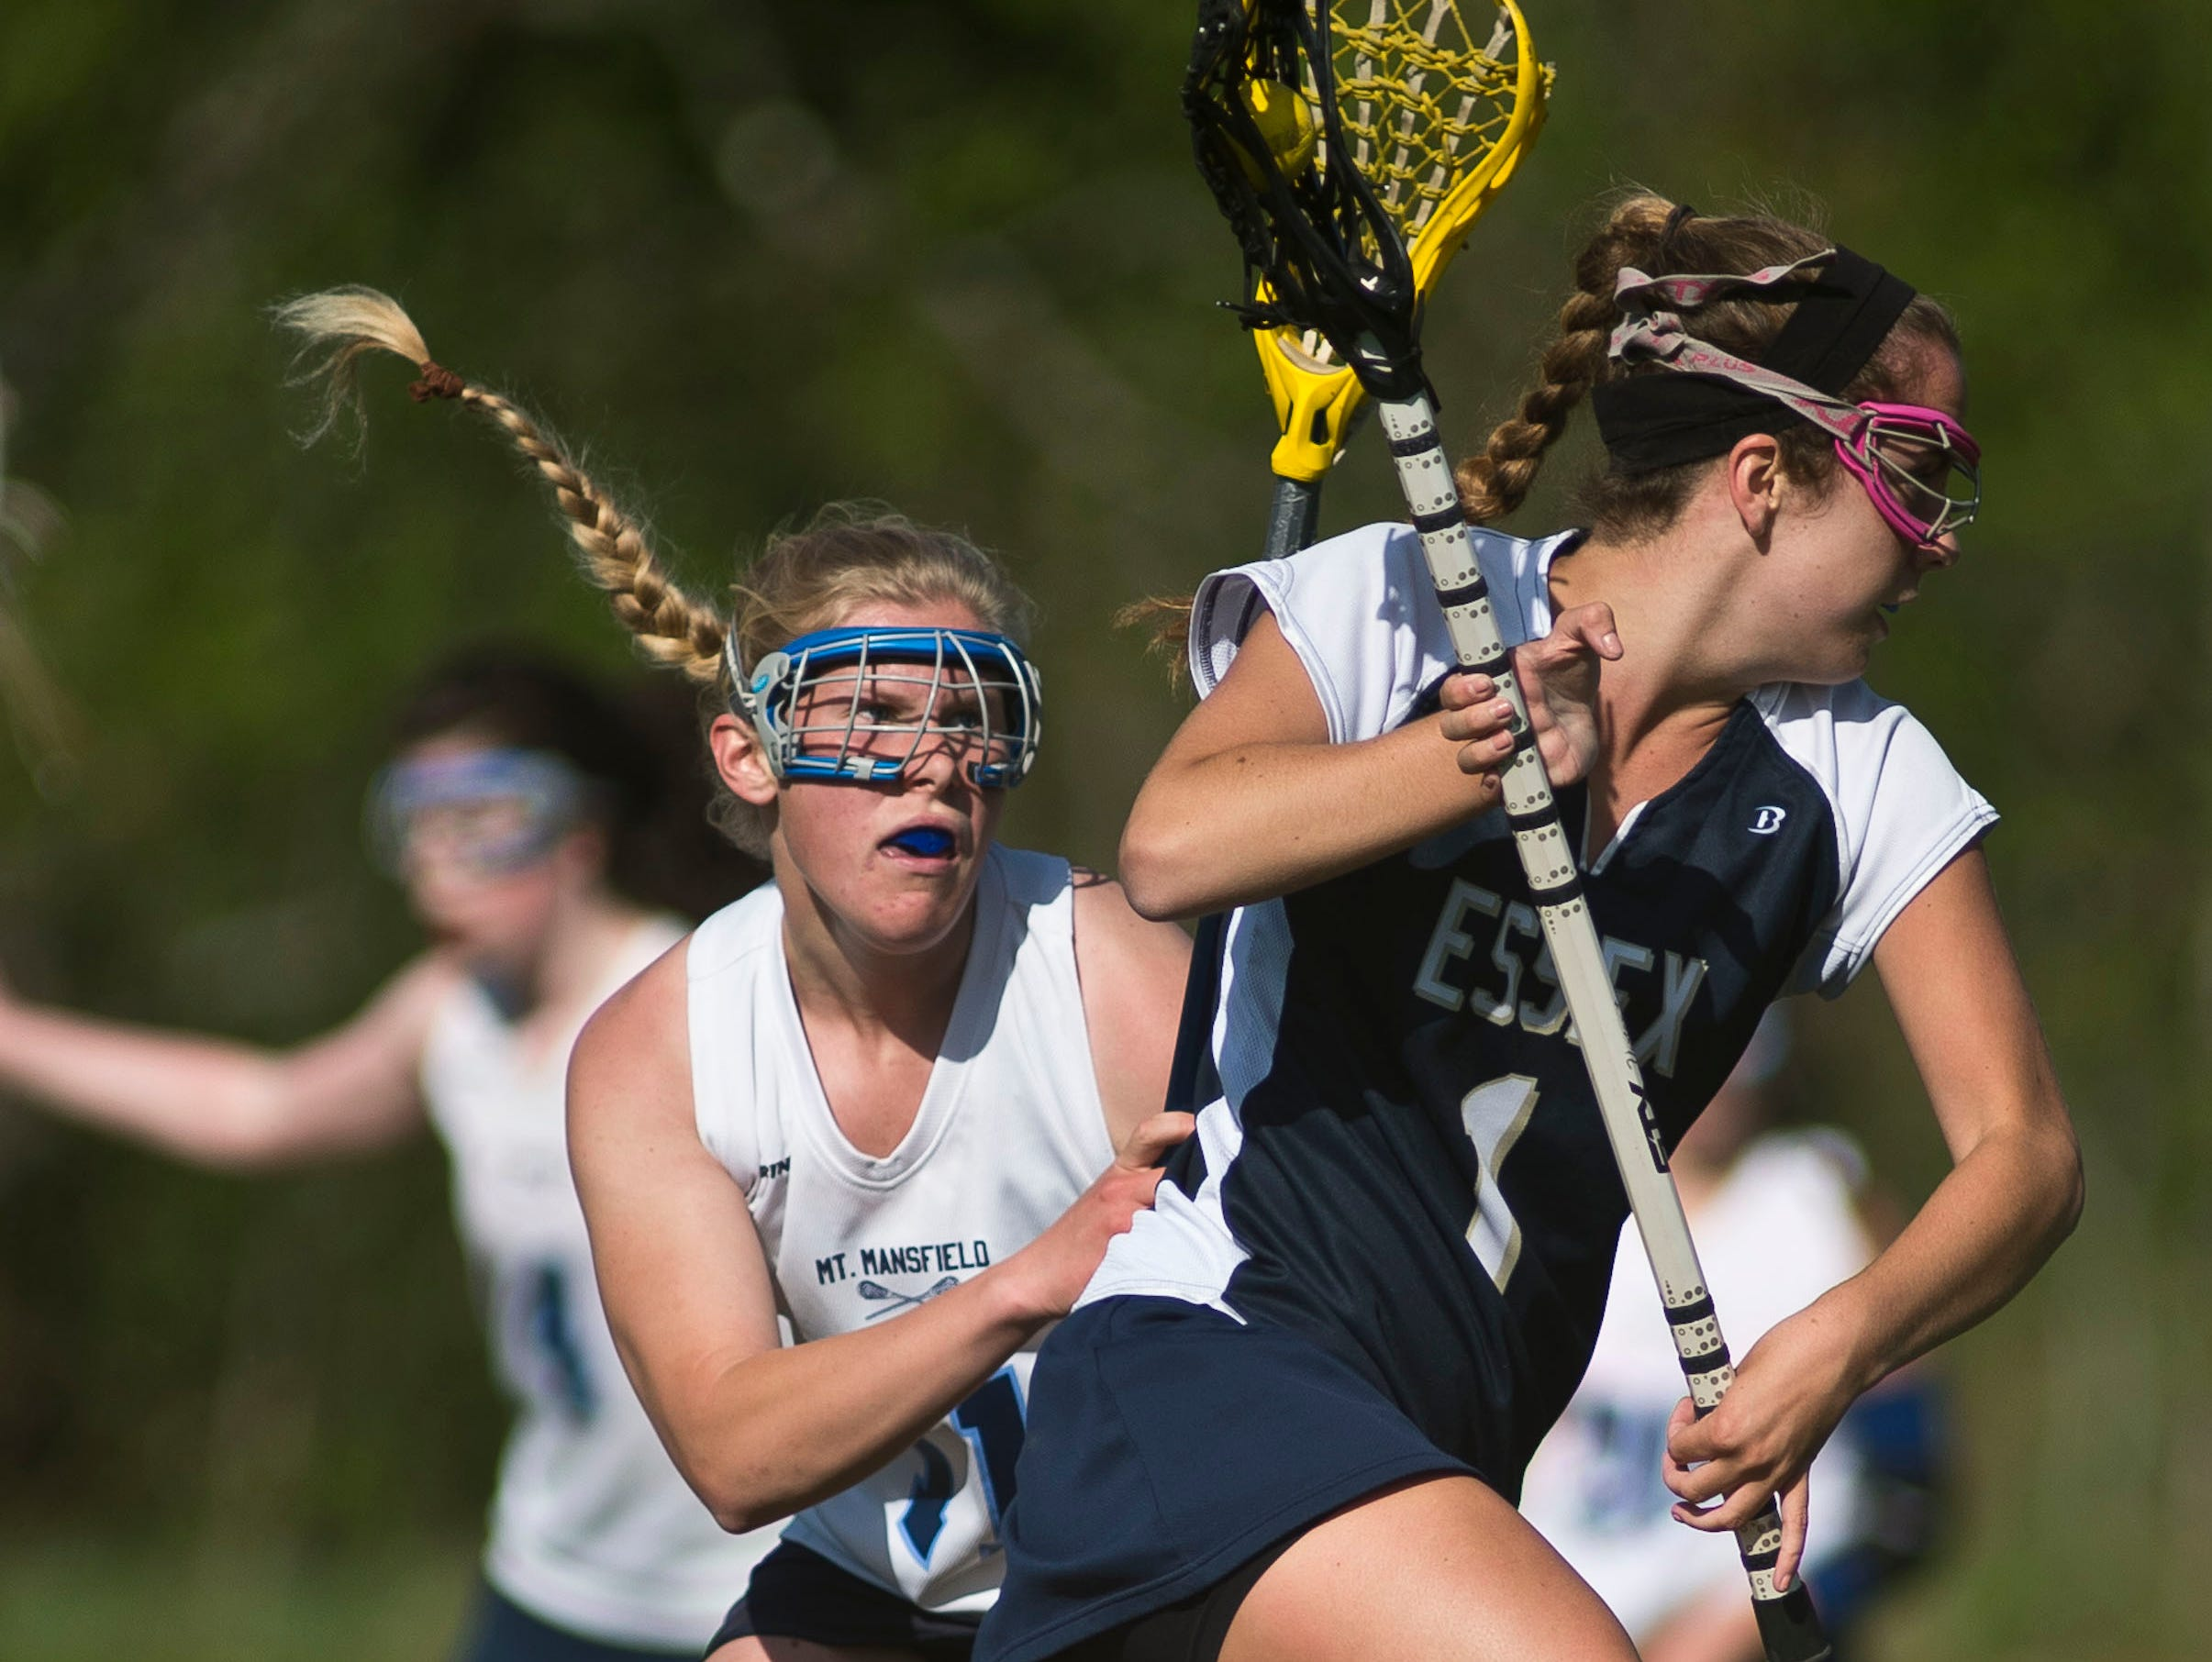 Essex's Olivia Malle (1) gets around Mount Mansfield's Karin Rand during their girls lacrosse game in in Jericho earlier this month.